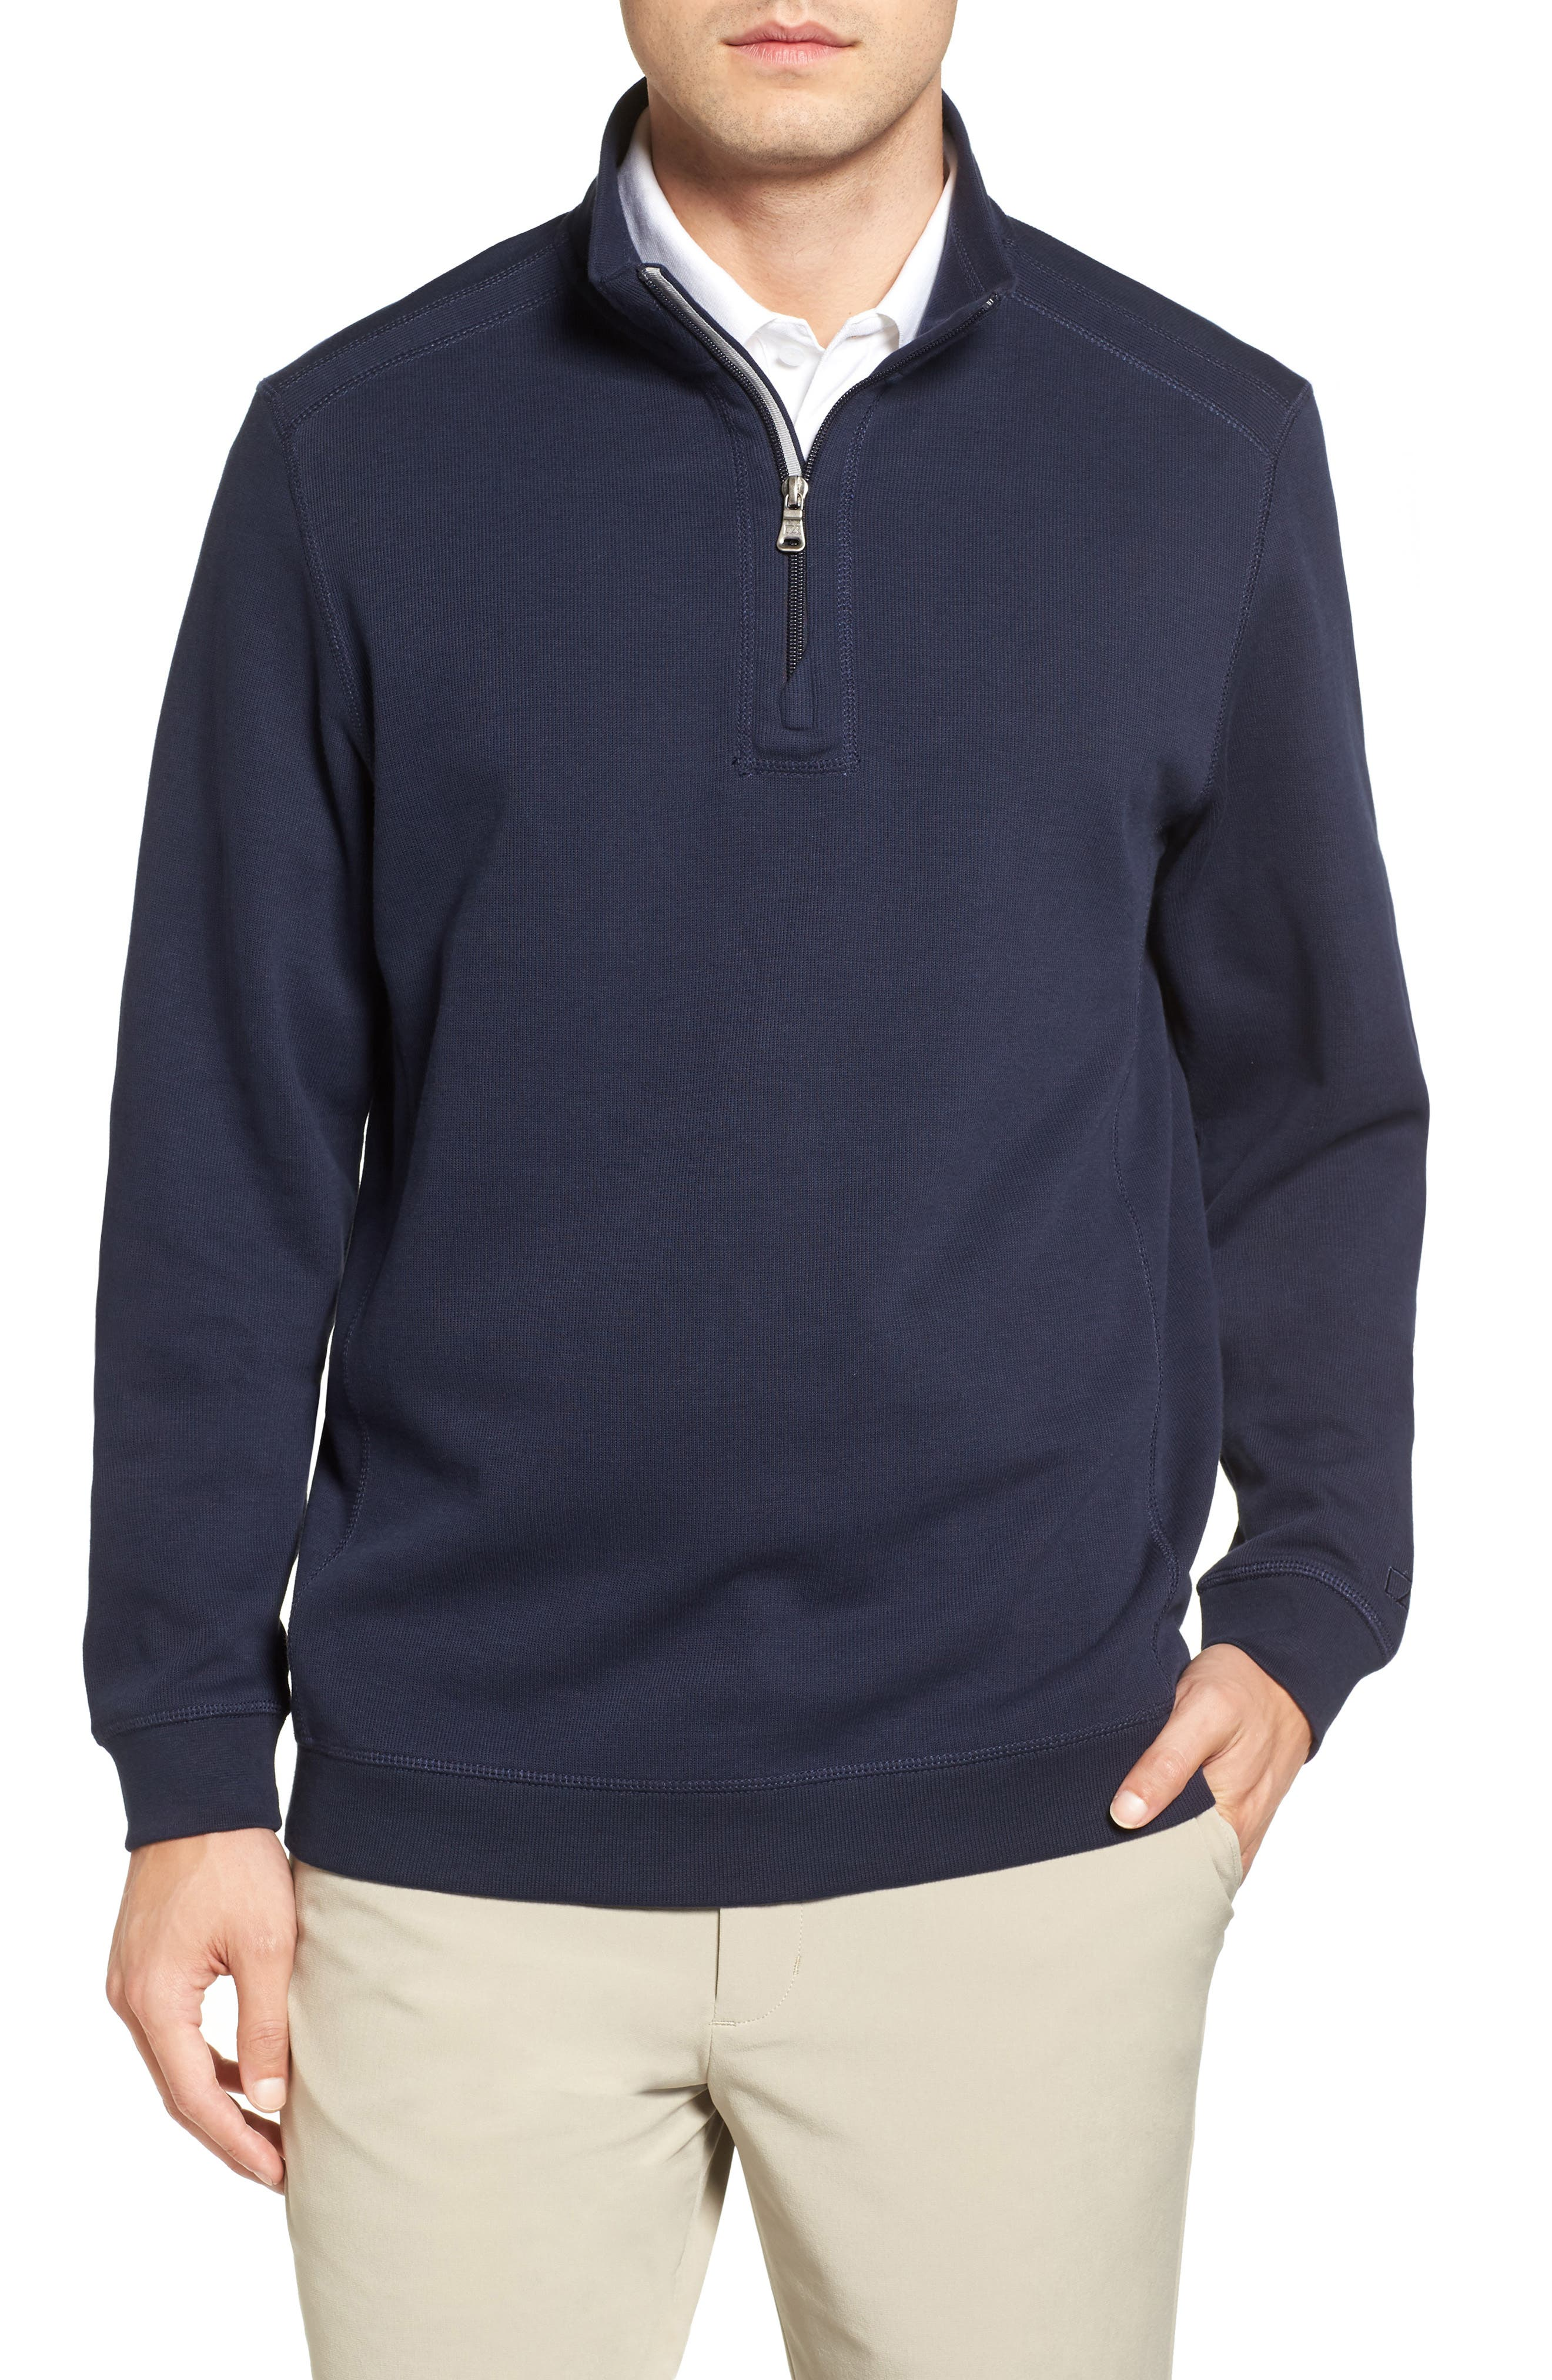 Bayview Quarter Zip Pullover,                             Main thumbnail 1, color,                             Liberty Navy